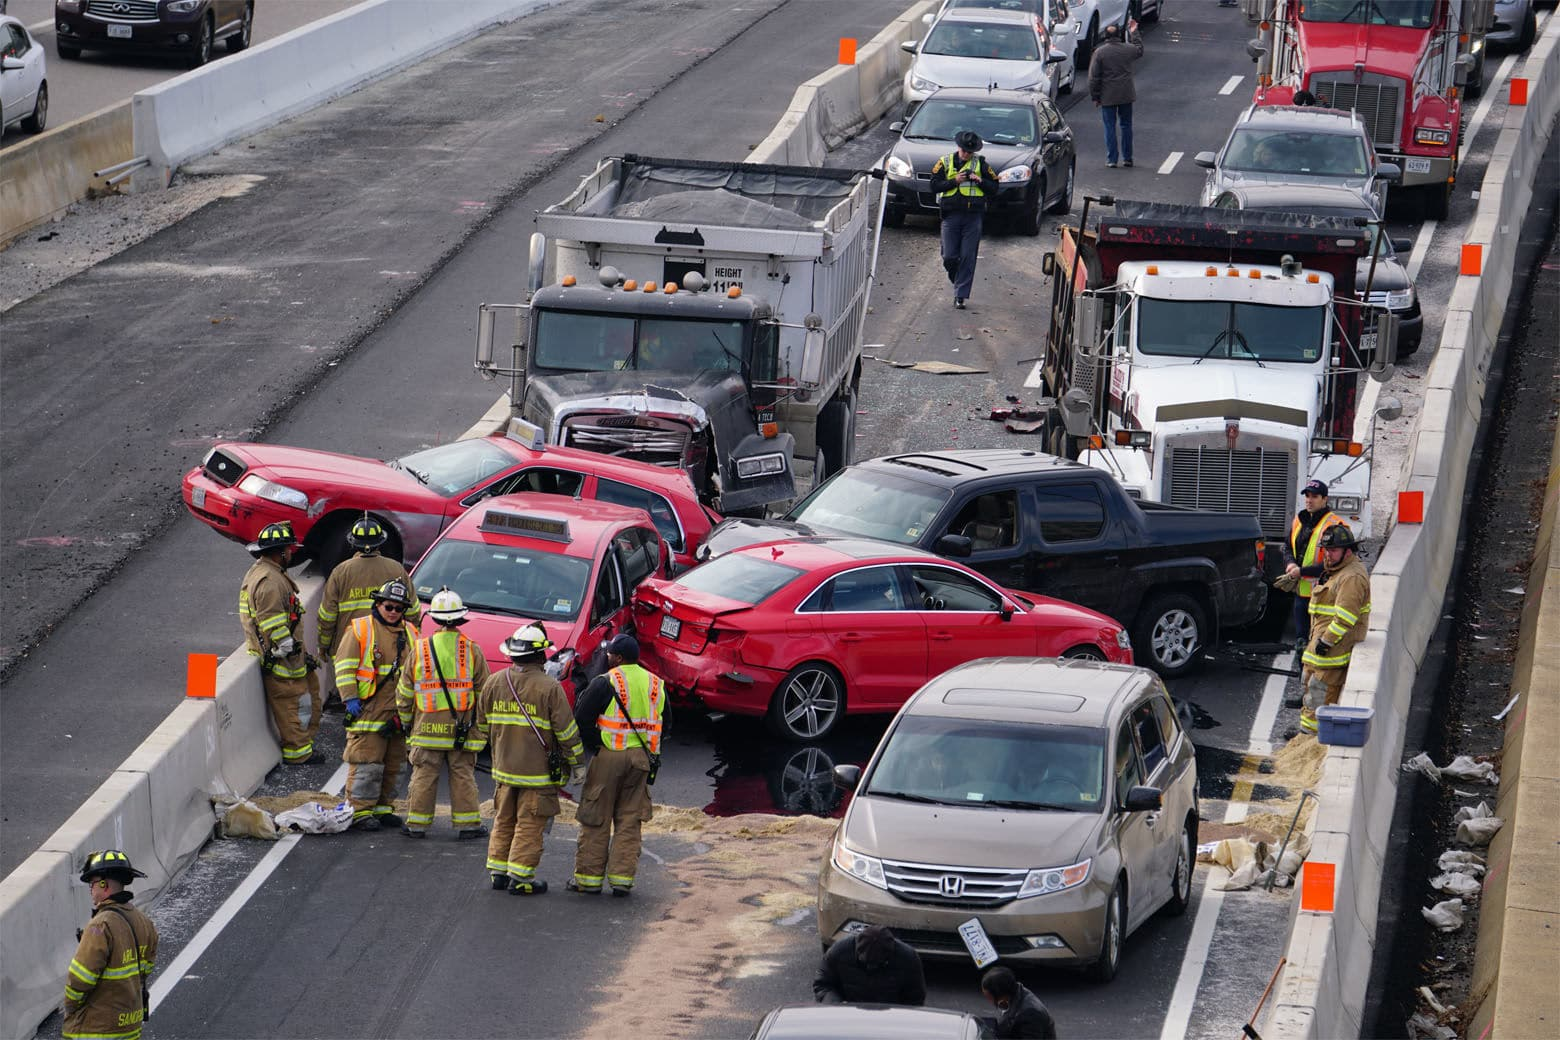 Crews in Arlington County are handling a crash that involves two taxis and a dump truck and several other vehicles in the High Occupancy Vehicle lanes of Interstate 395 in Shirlington, Virginia. (Courtesy Thomas Philibin/Live Wire Media Relations)